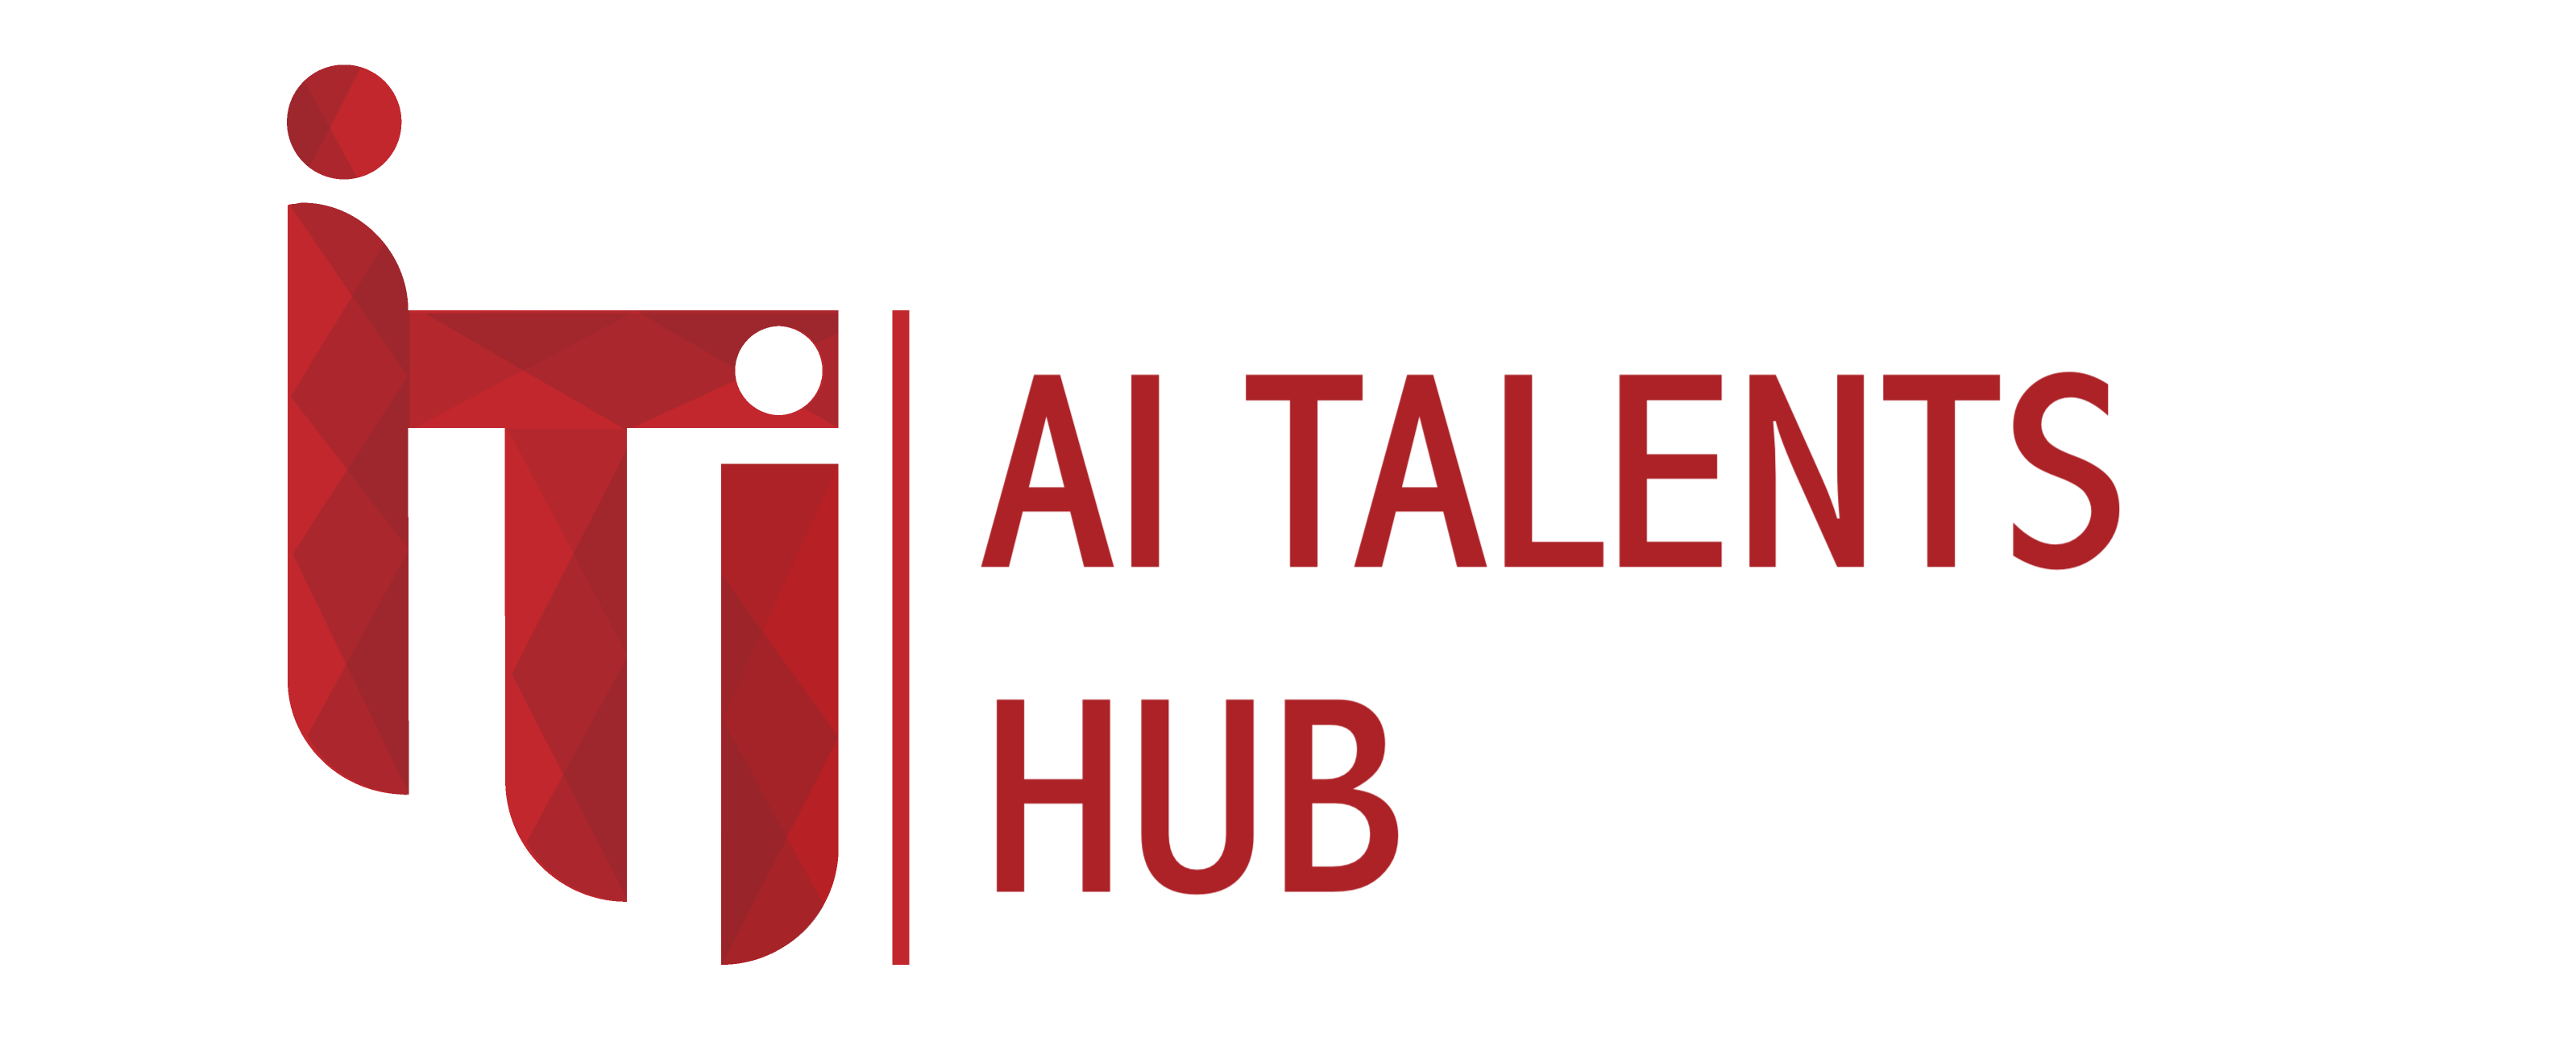 ITI AI Talents Hub - Apply to the brand new ITI AI and ML track.